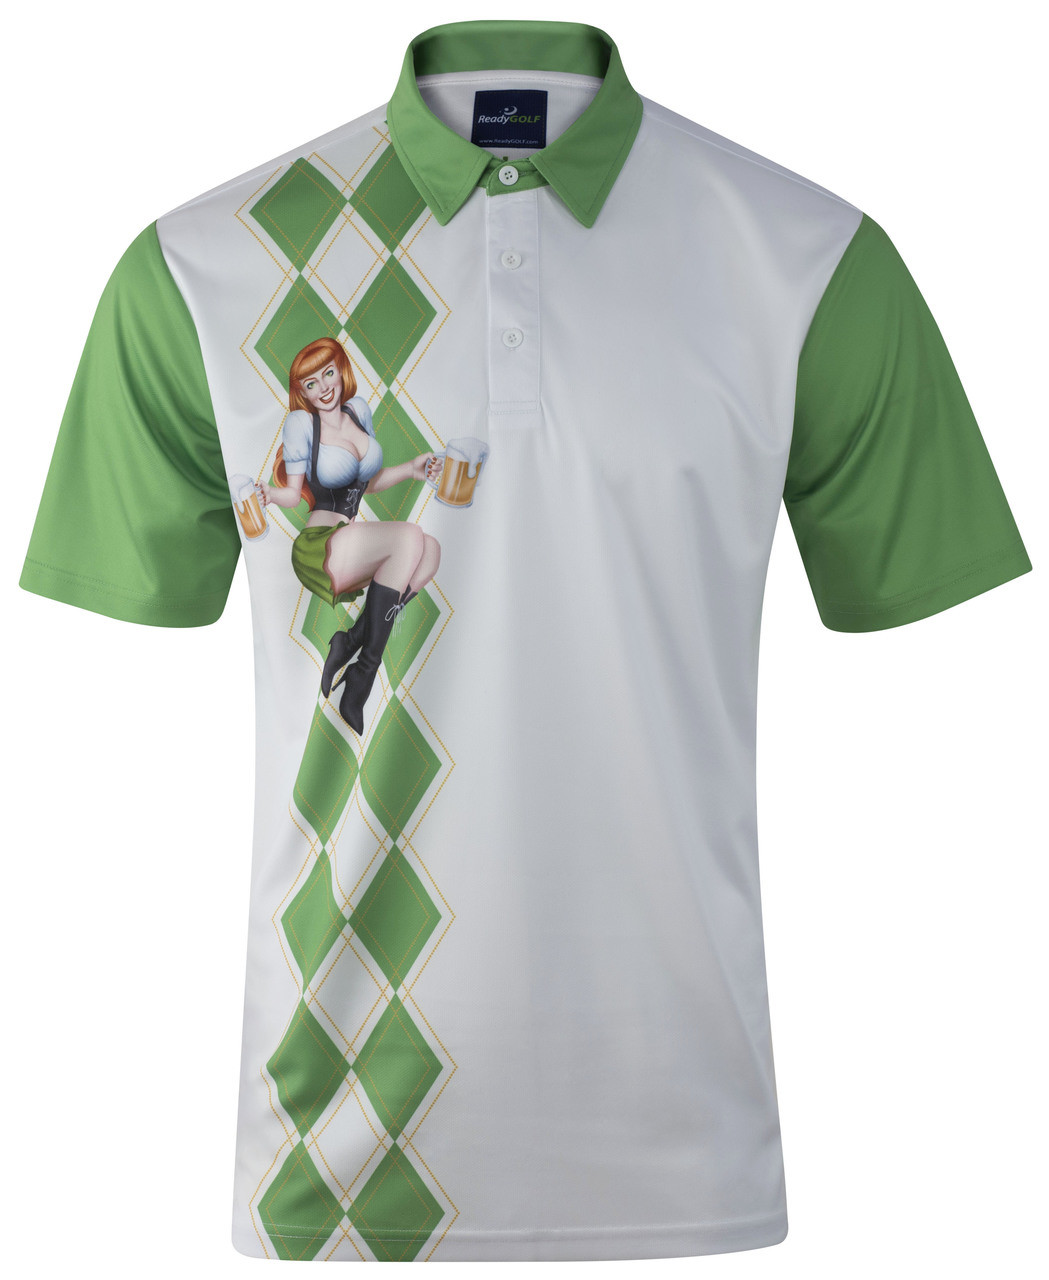 3c6652b3c Beer Girl Men's Golf Polo Shirt by ReadyGOLF